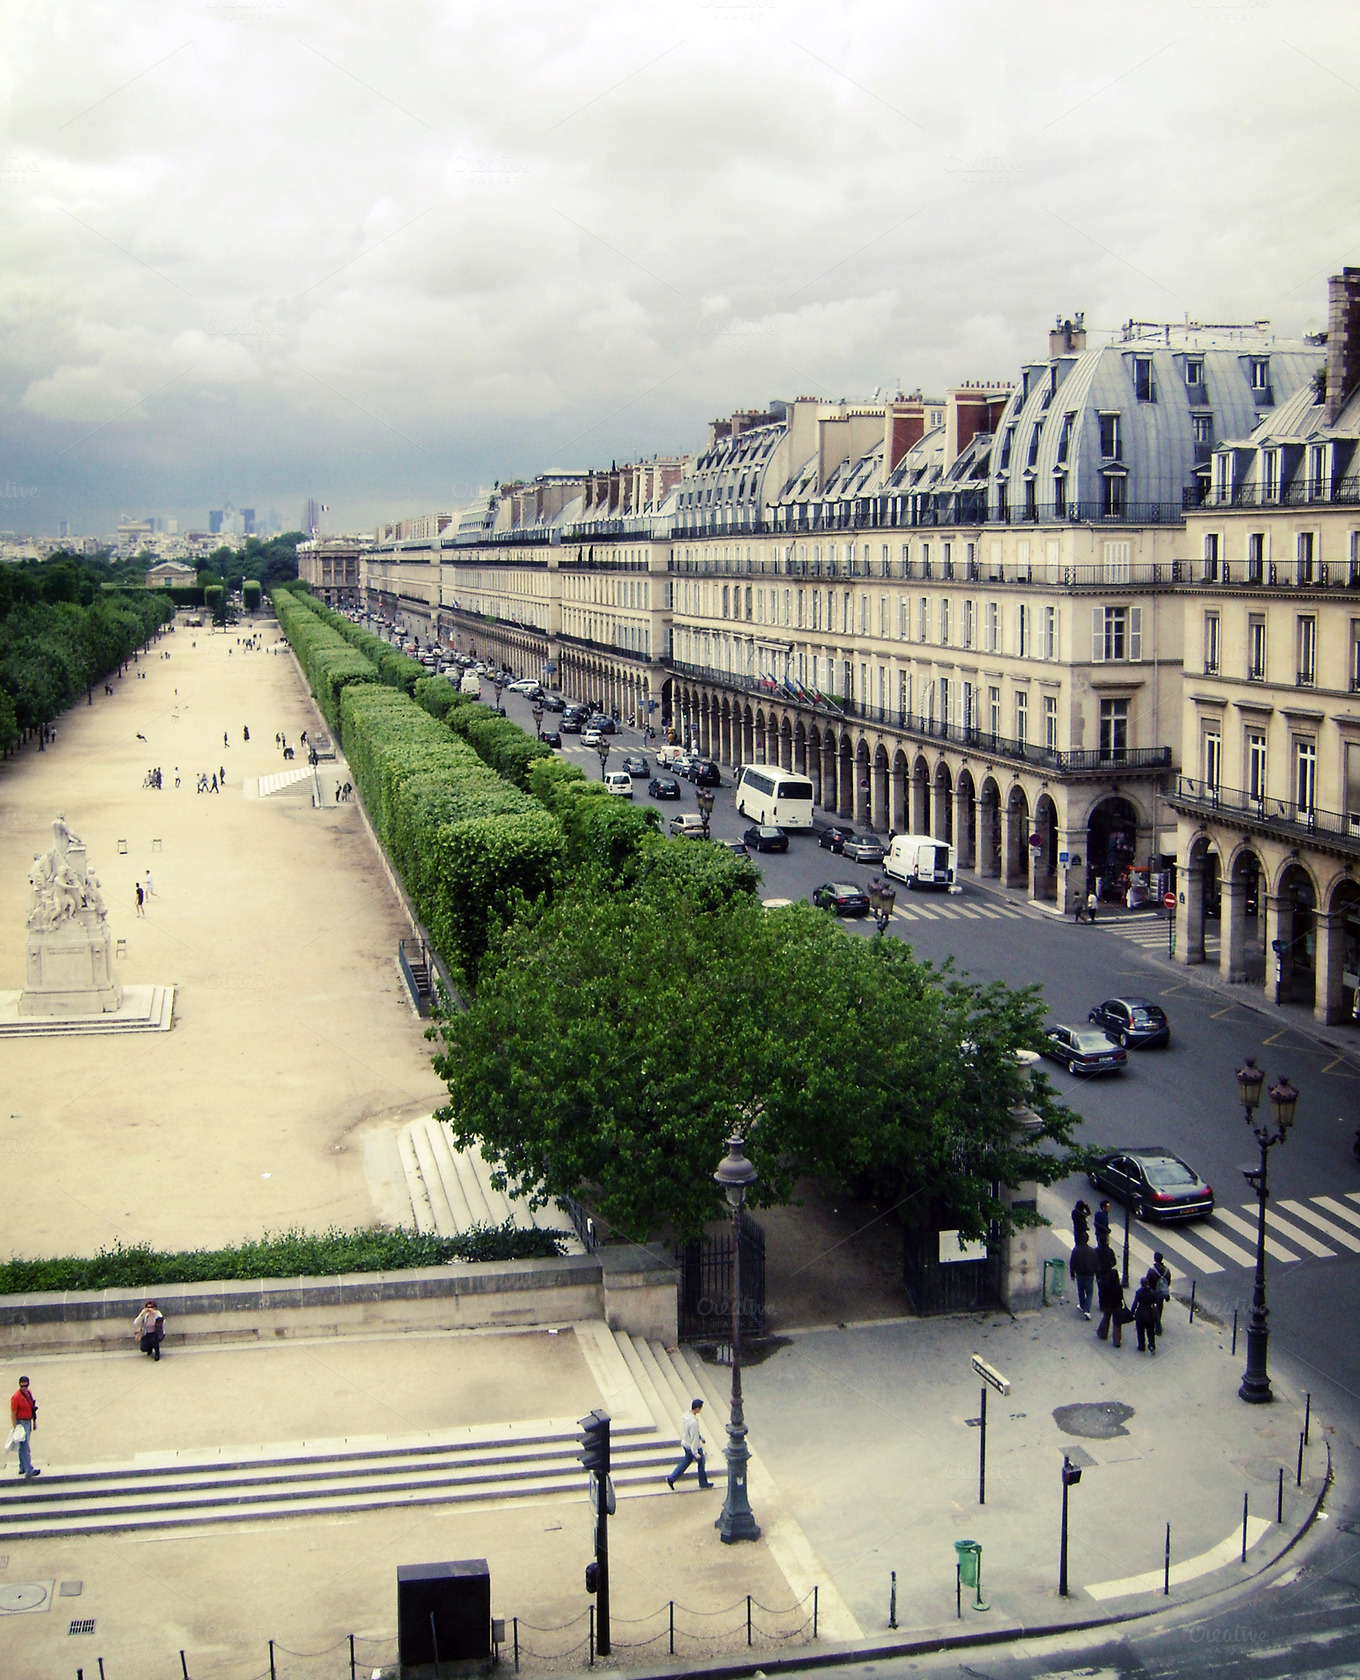 Jardin des tuileries paris architecture photos on for Architecture jardin